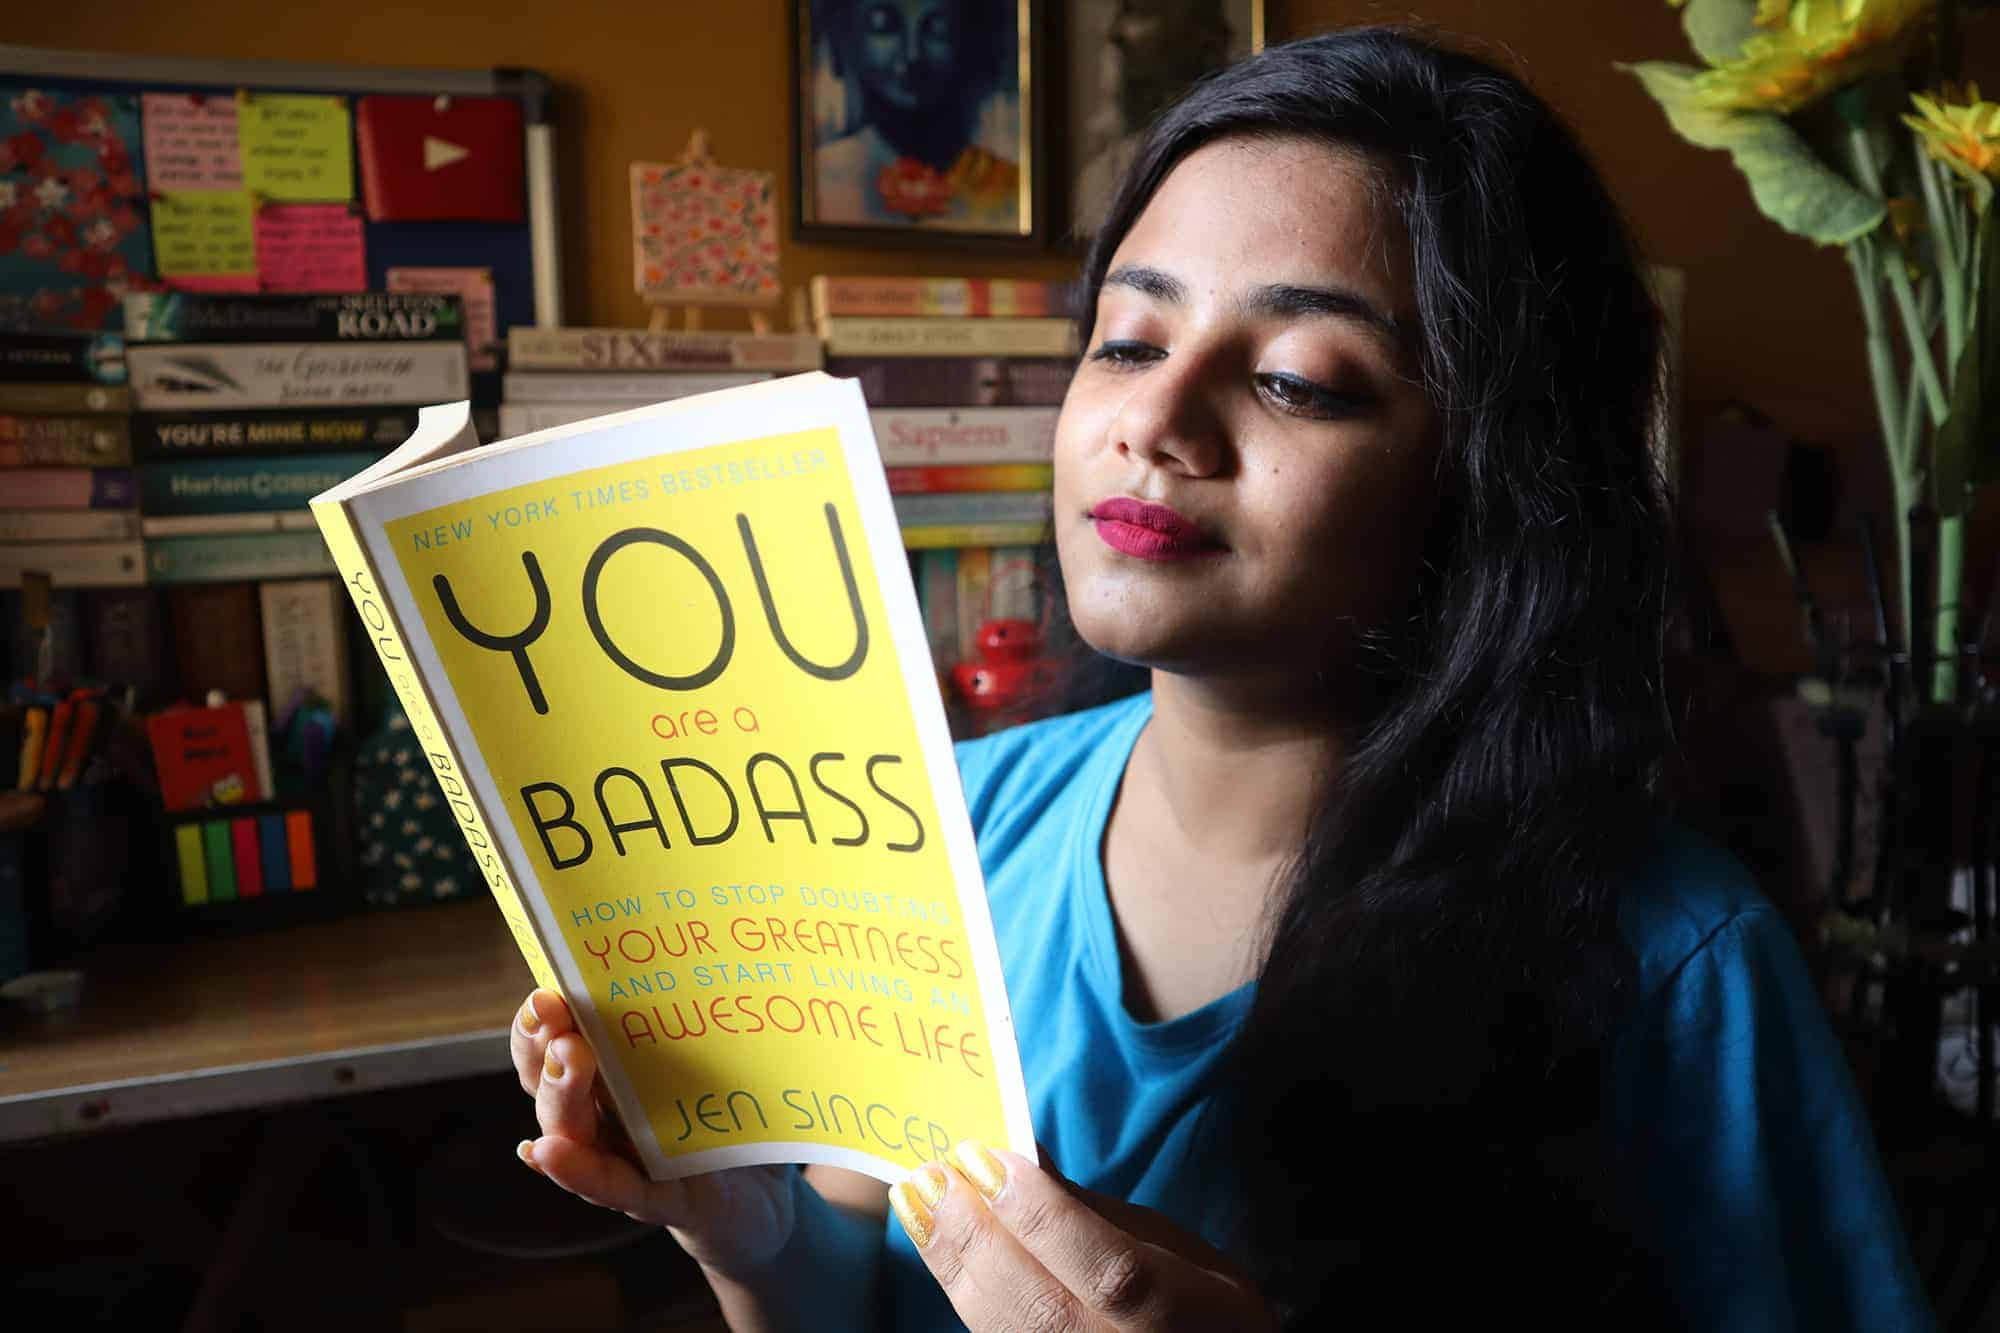 You Are A Badass How To Stop Doubting Your Greatness And Start Living An Awesome Life By Jen Sincero